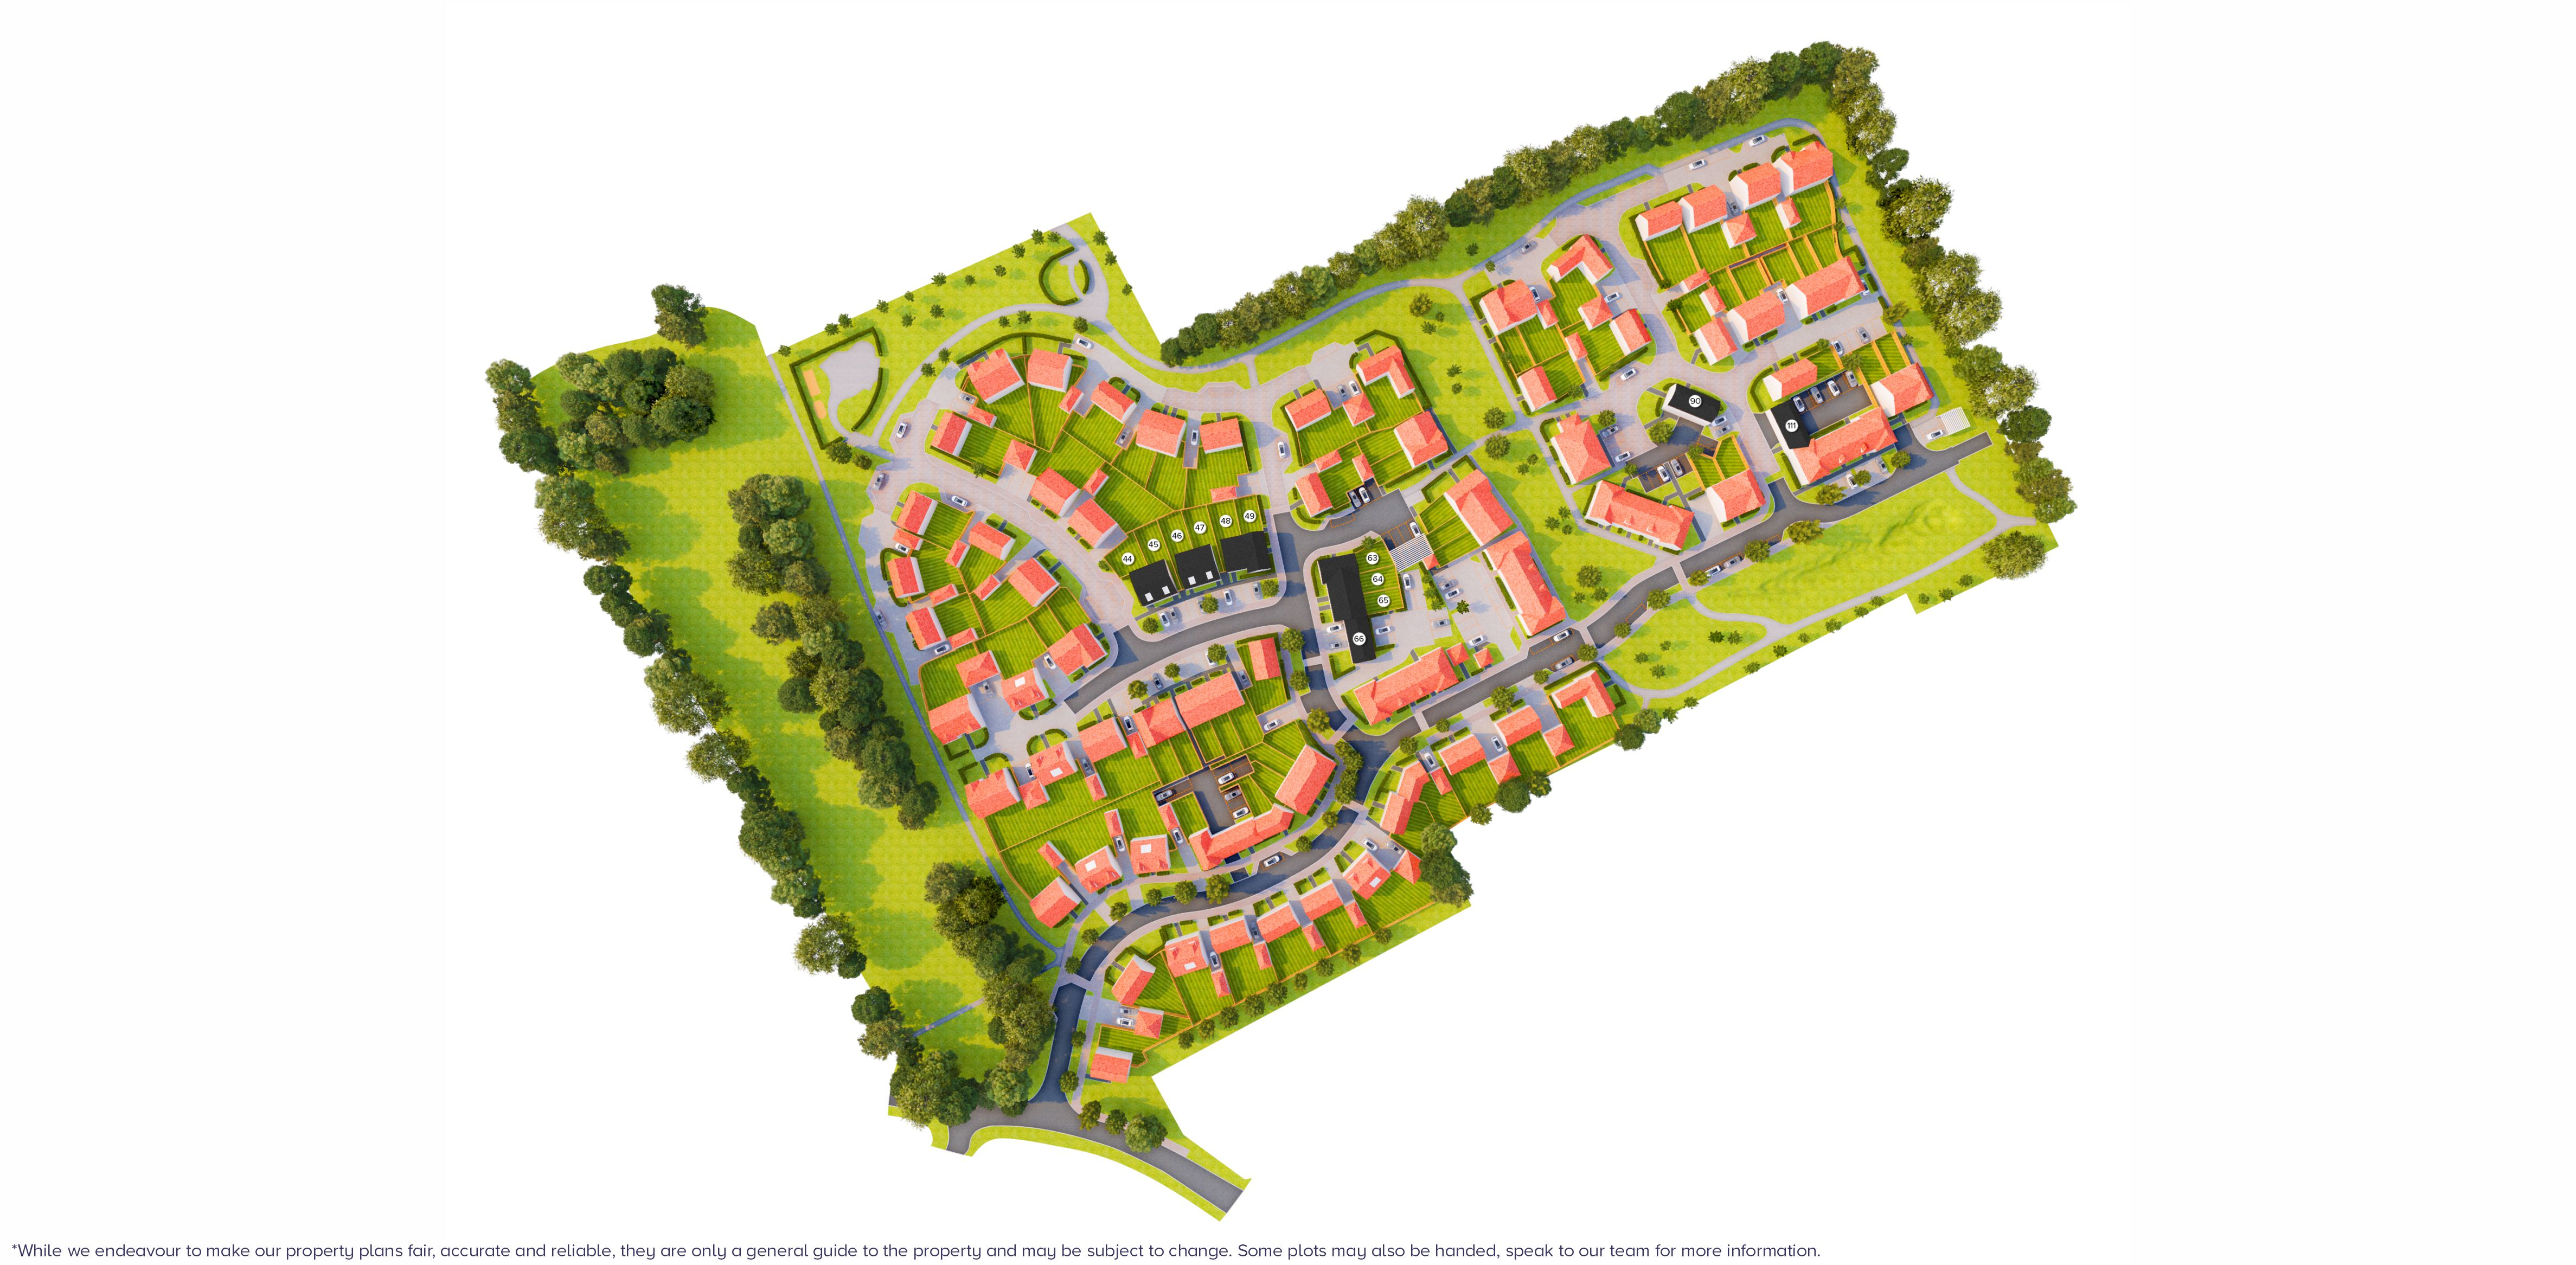 abbey view farnham site map